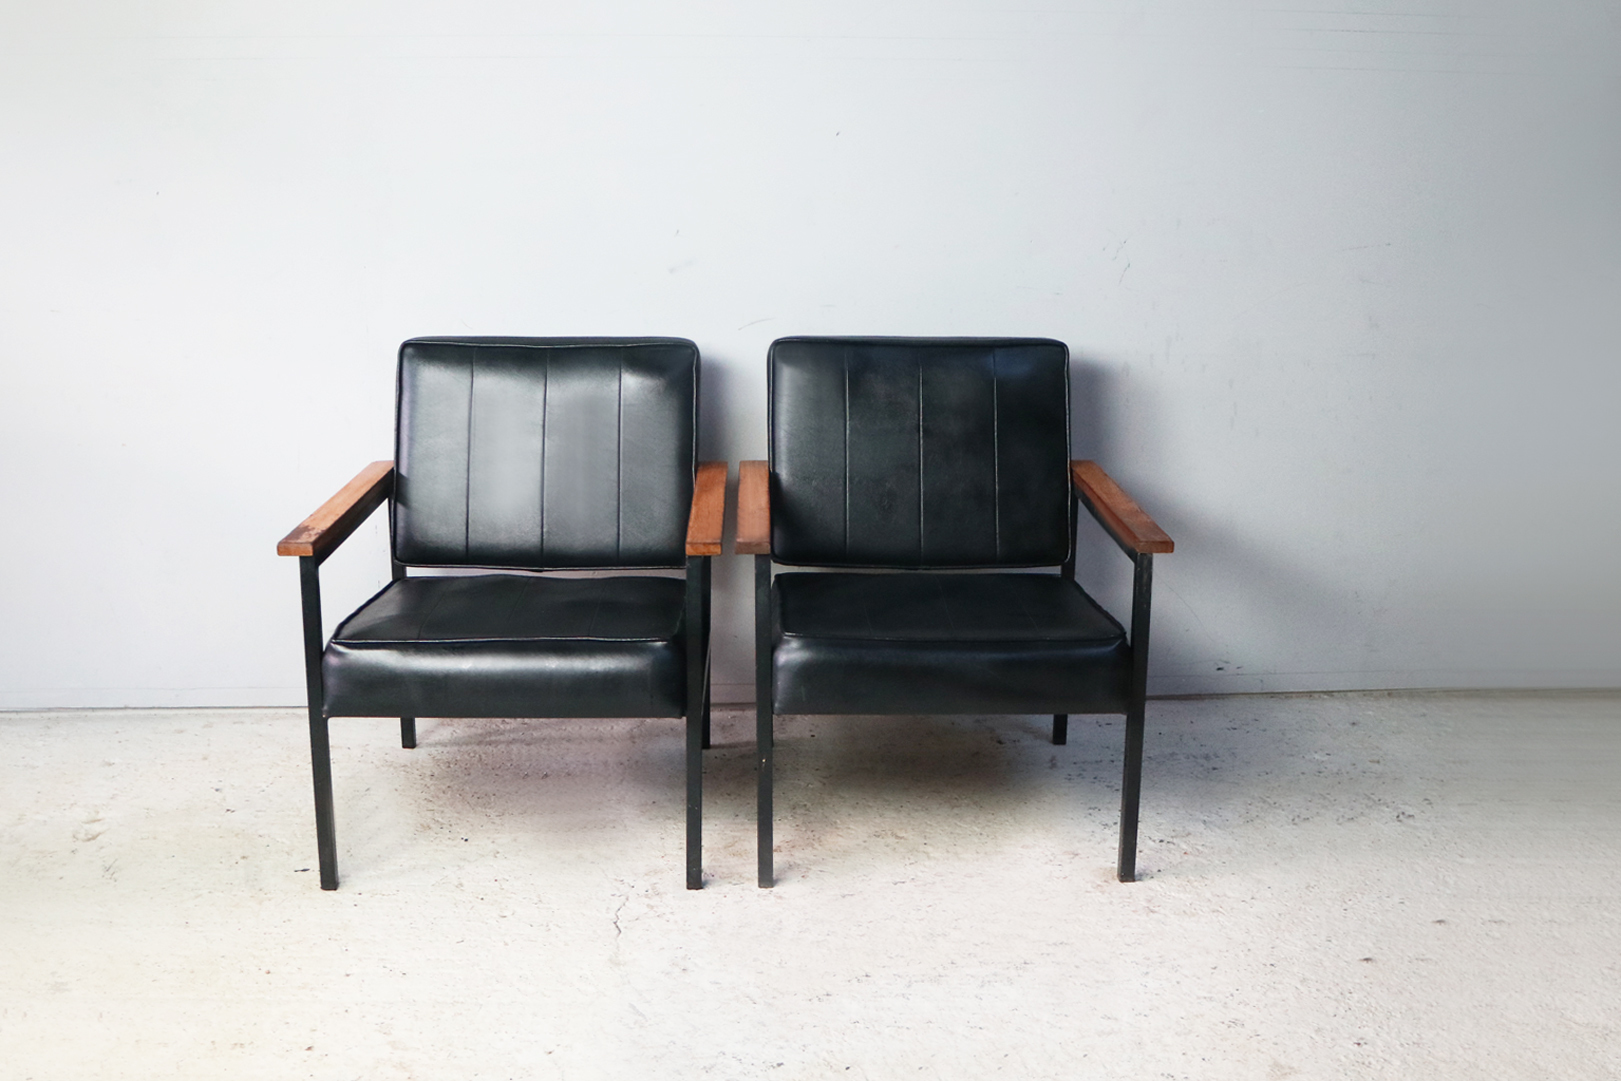 Astounding Pair 1970S Mid Century Black Vinyl Chairs Theyellowbook Wood Chair Design Ideas Theyellowbookinfo